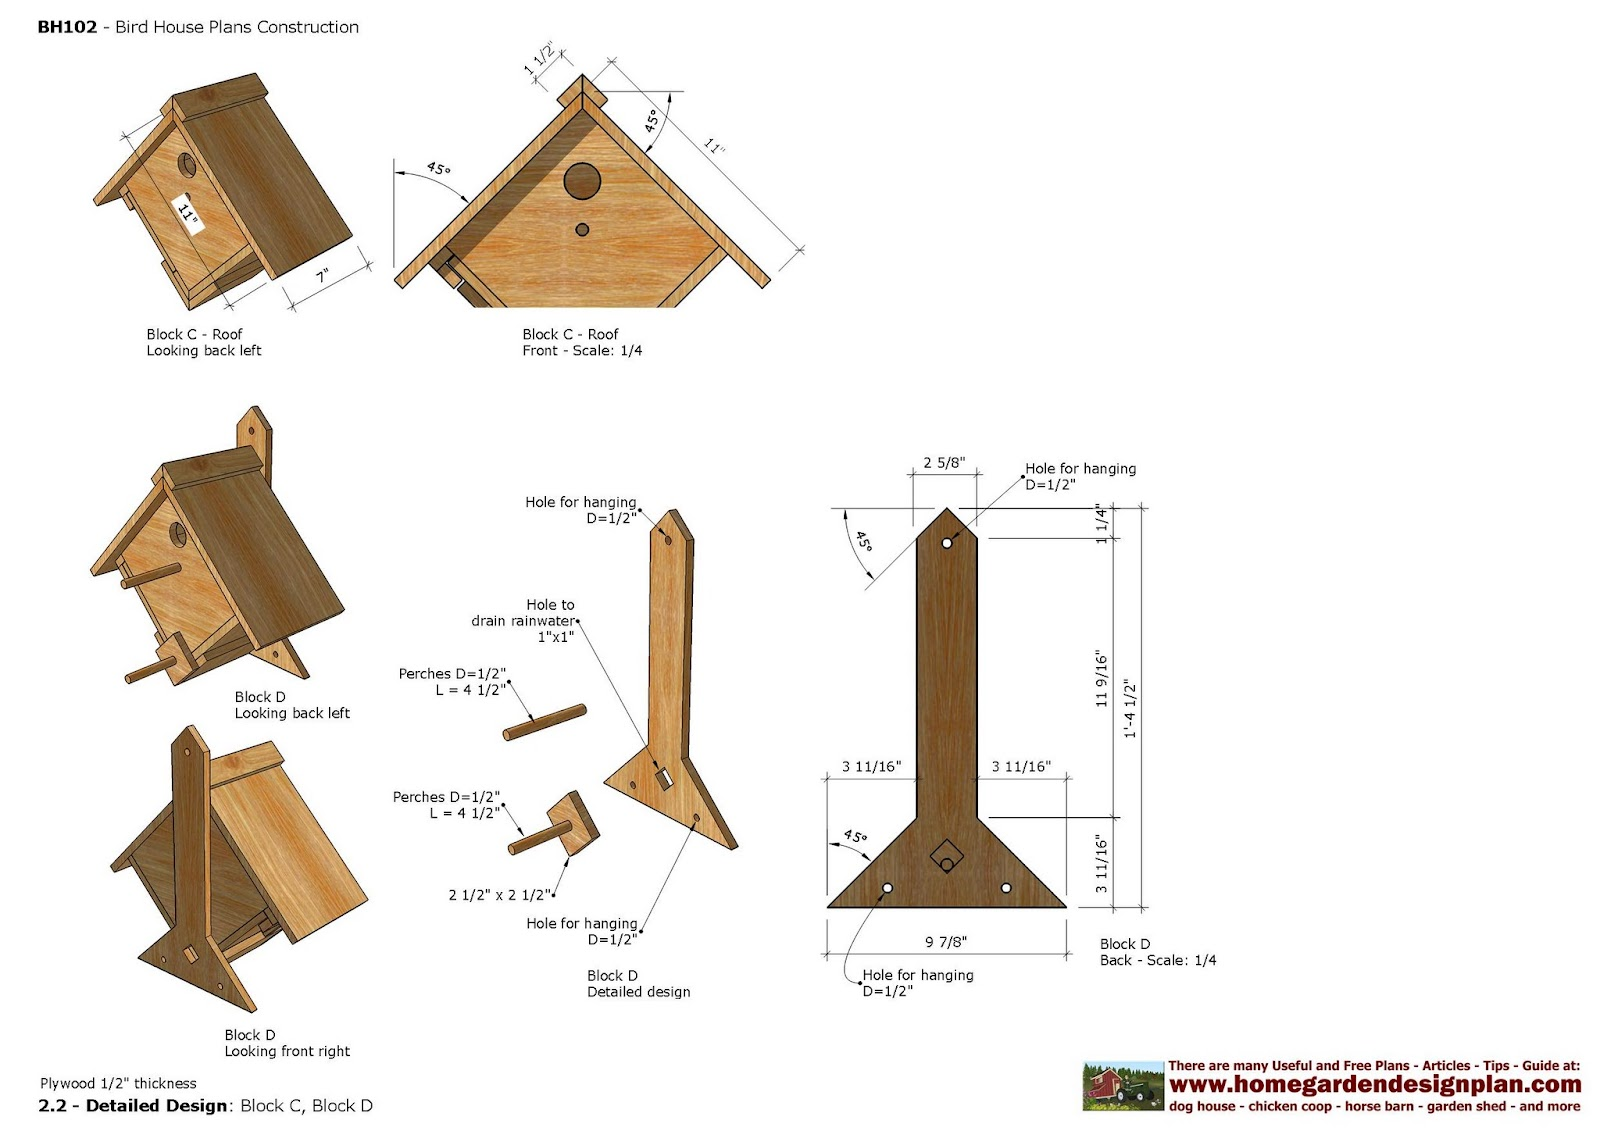 Bird house plans driverlayer search engine for House plan search engine